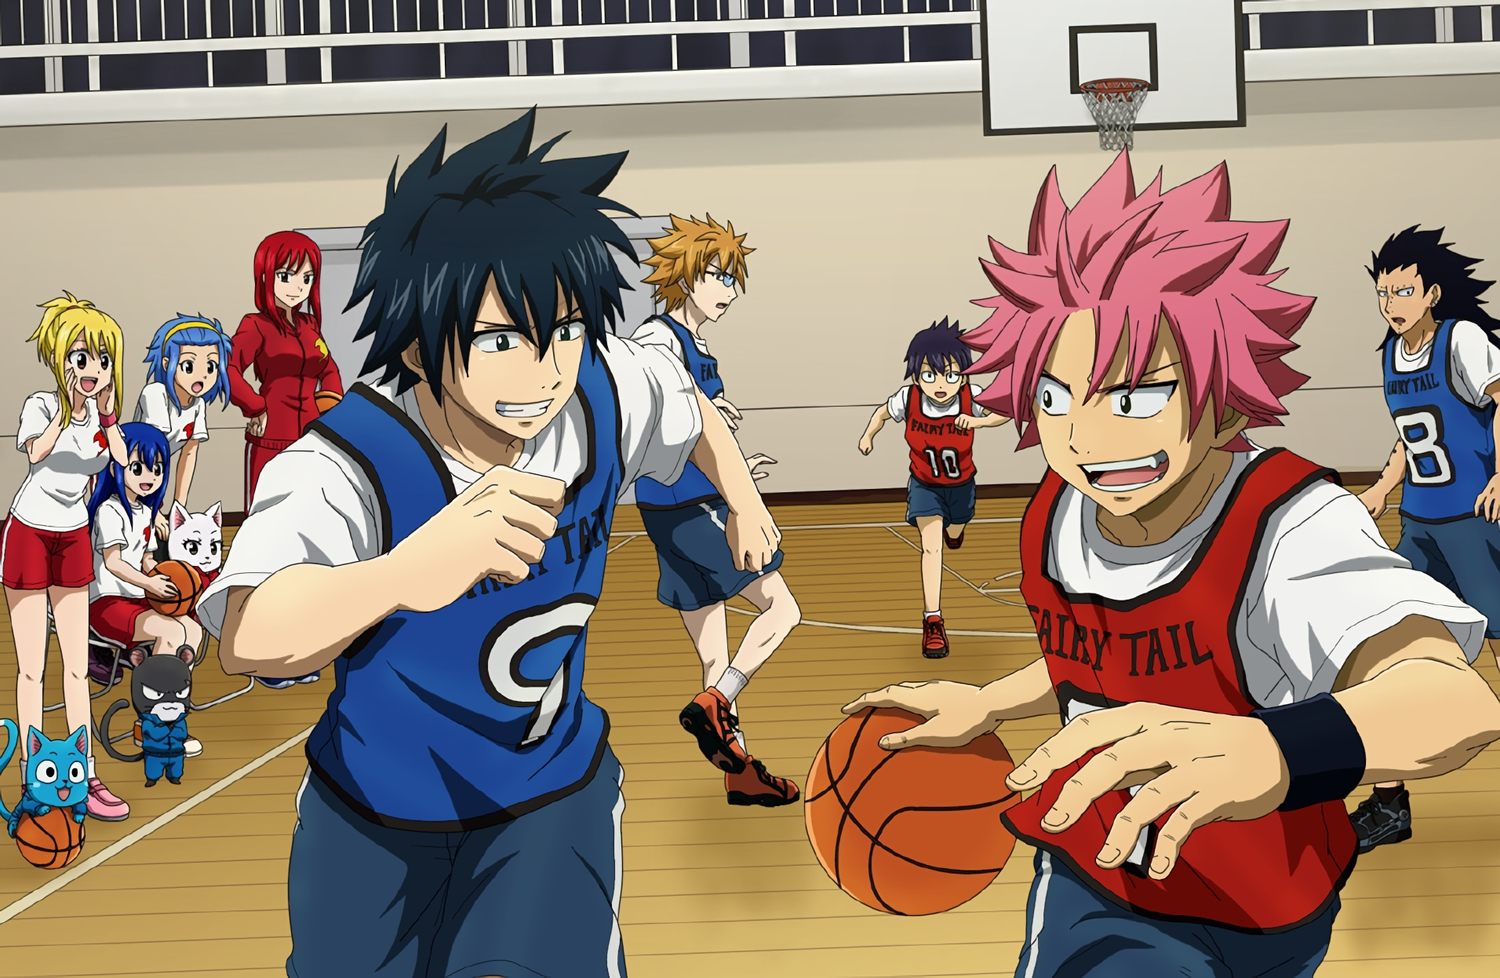 animal ball basketball black_hair blonde_hair blue_hair bluesnowcat brown_hair cat charle_(fairy_tail) erza_scarlet fairy_tail gajeel_redfox glasses gray_fullbuster group happy_(fairy_tail) headband levy_mcgarden lucy_heartfilia lyon male natsu_dragneel pantherlily pink_hair red_hair short_hair shorts socks sport wendy_marvell